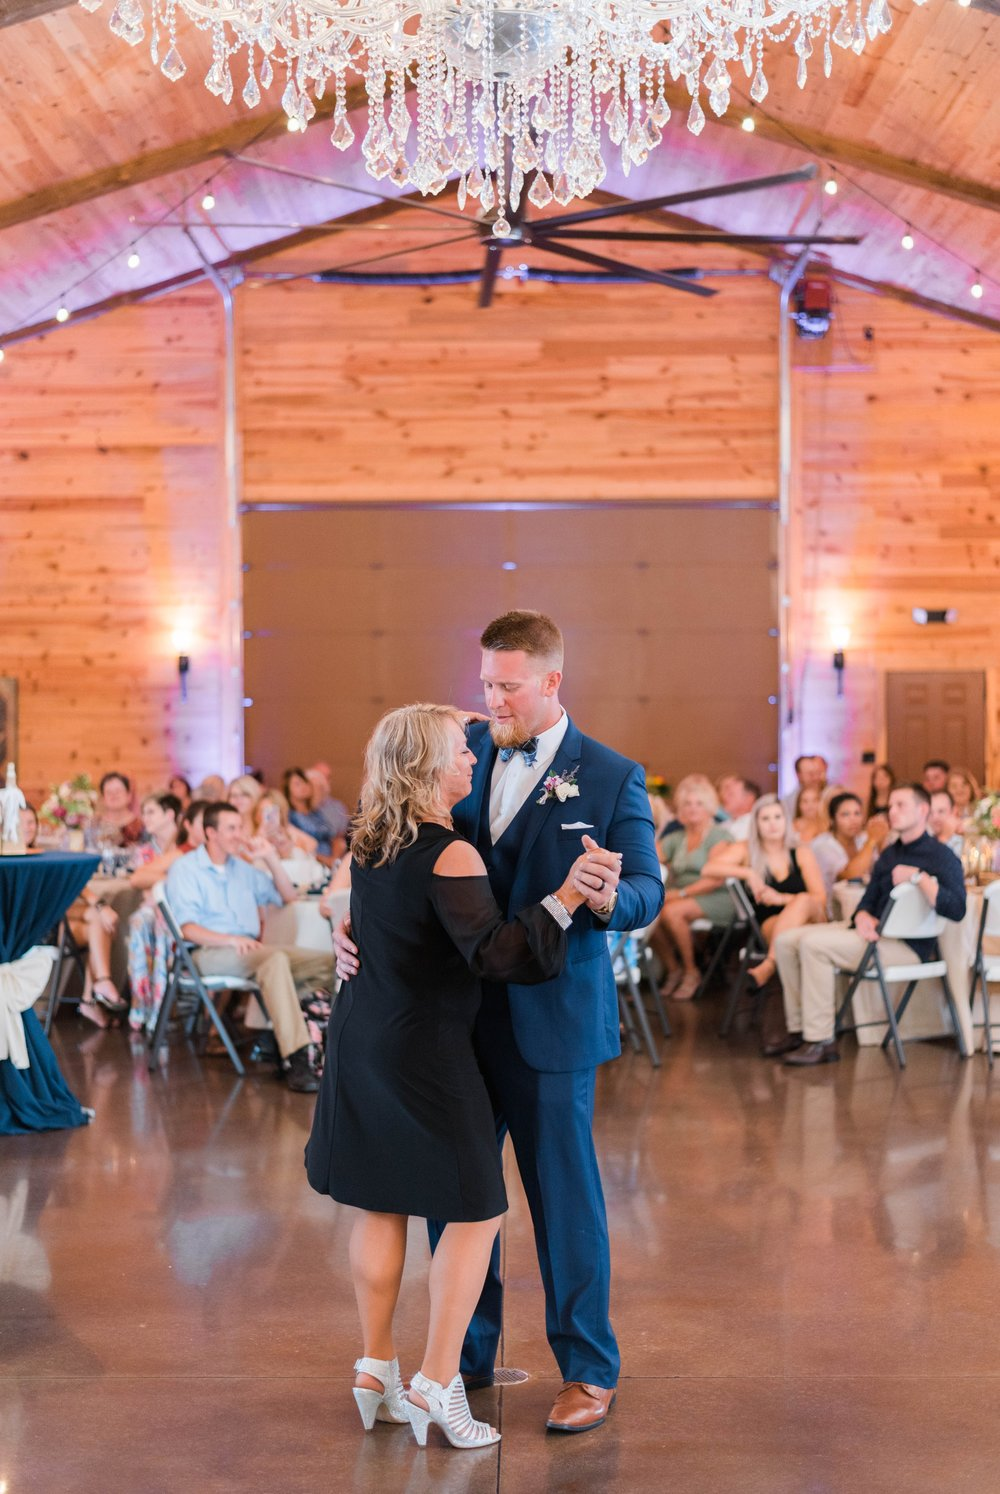 atkinson farms_VirginiaWeddingPhotographer_LynchburgWeddingPhotographer_DylanandLauren 48.jpg